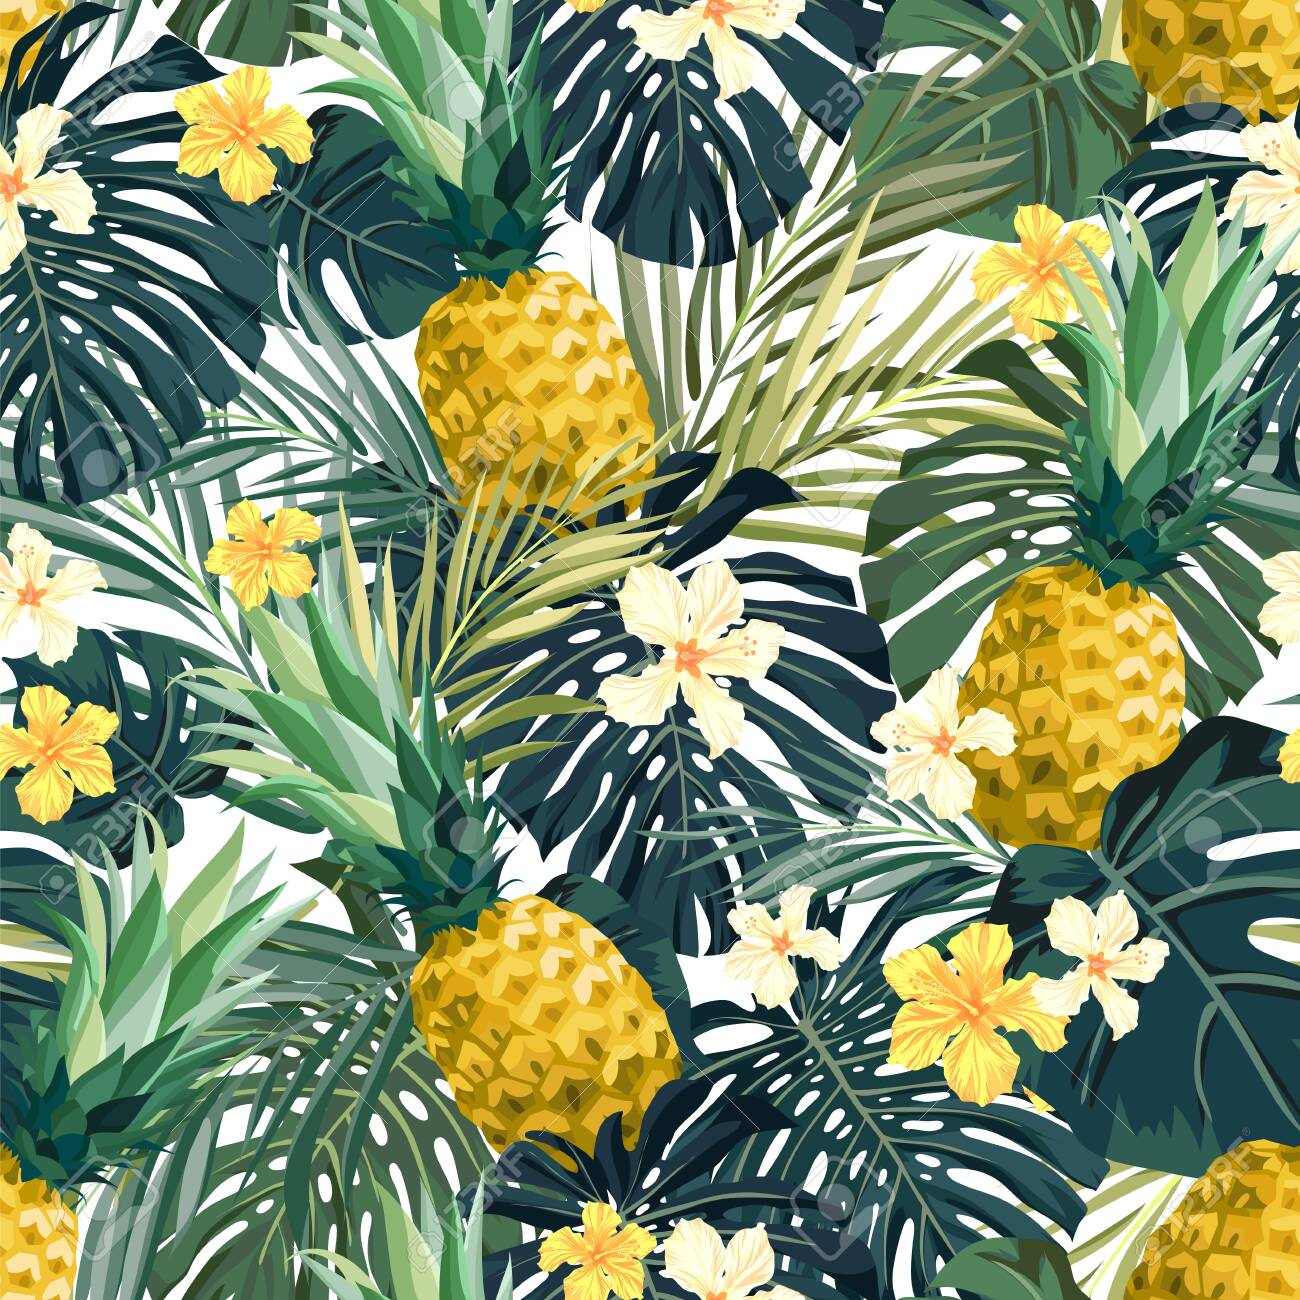 Seamless hand drawn tropical vector pattern with exotic palm leaves, hibiscus flowers, pineapples and various plants on white background. - 142836562